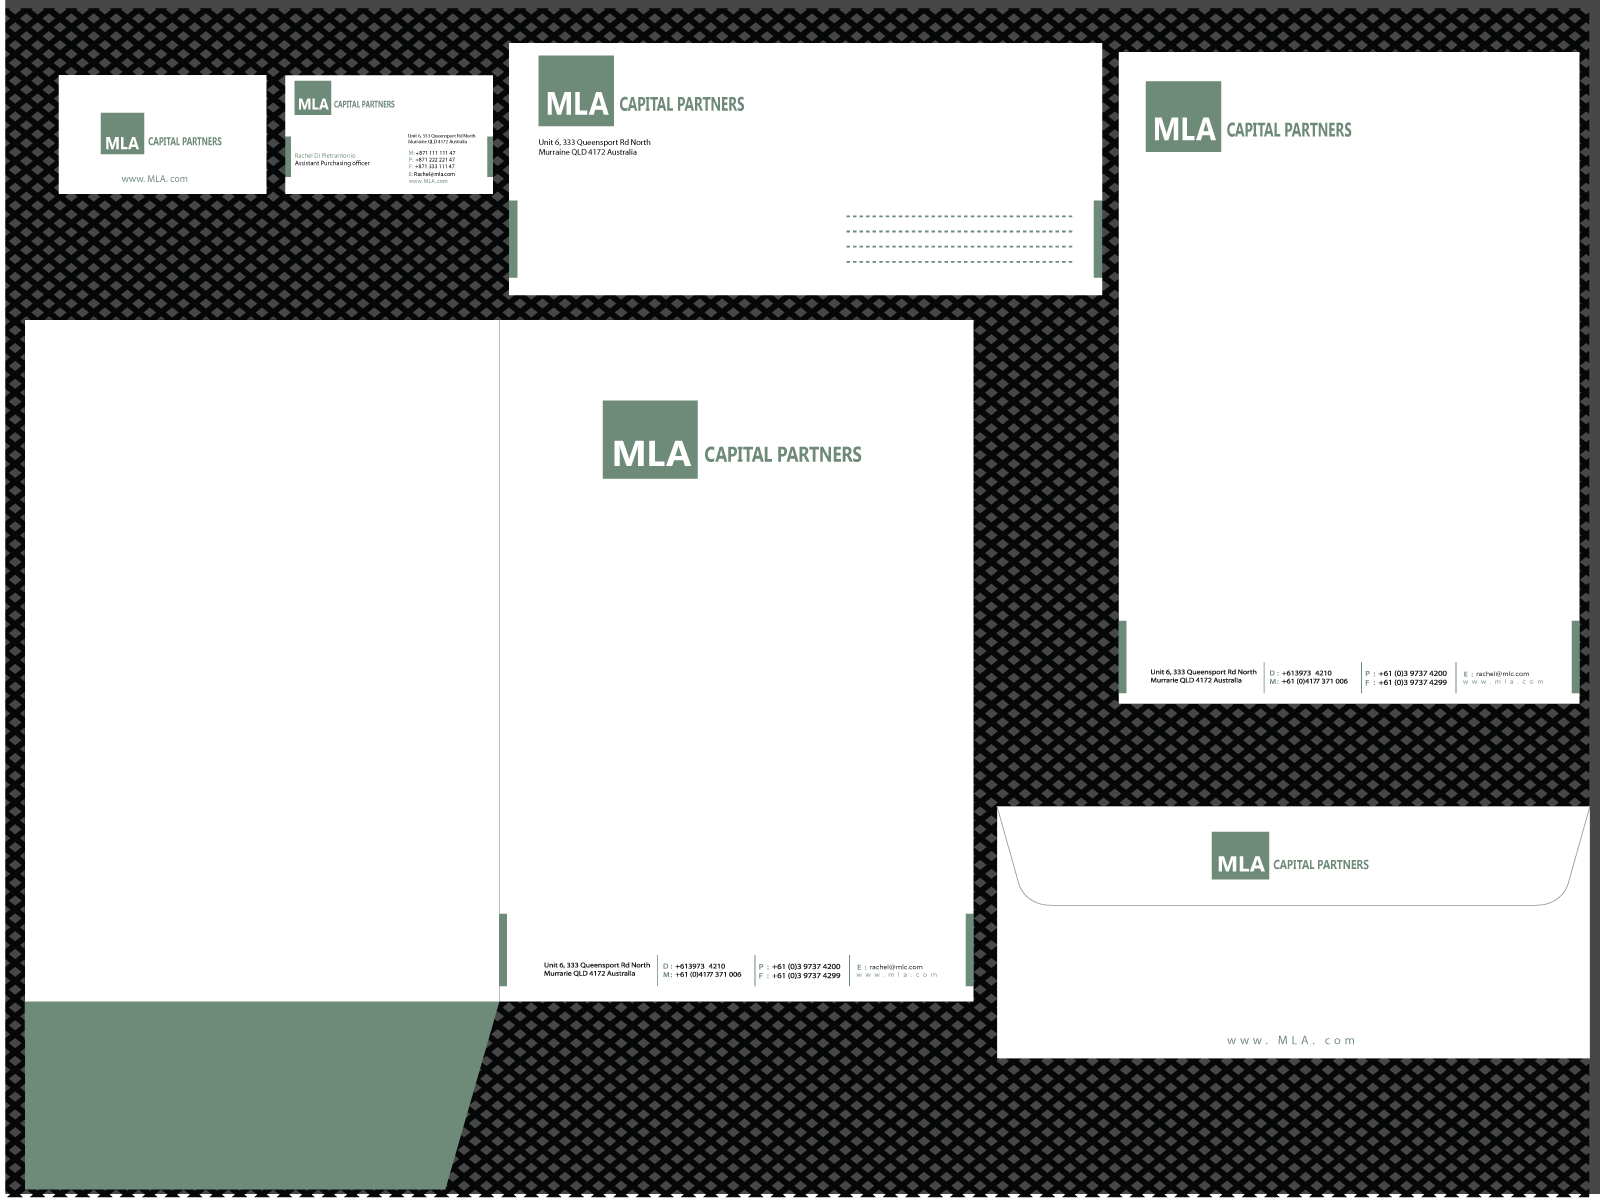 stationery for MLA Capital Partners